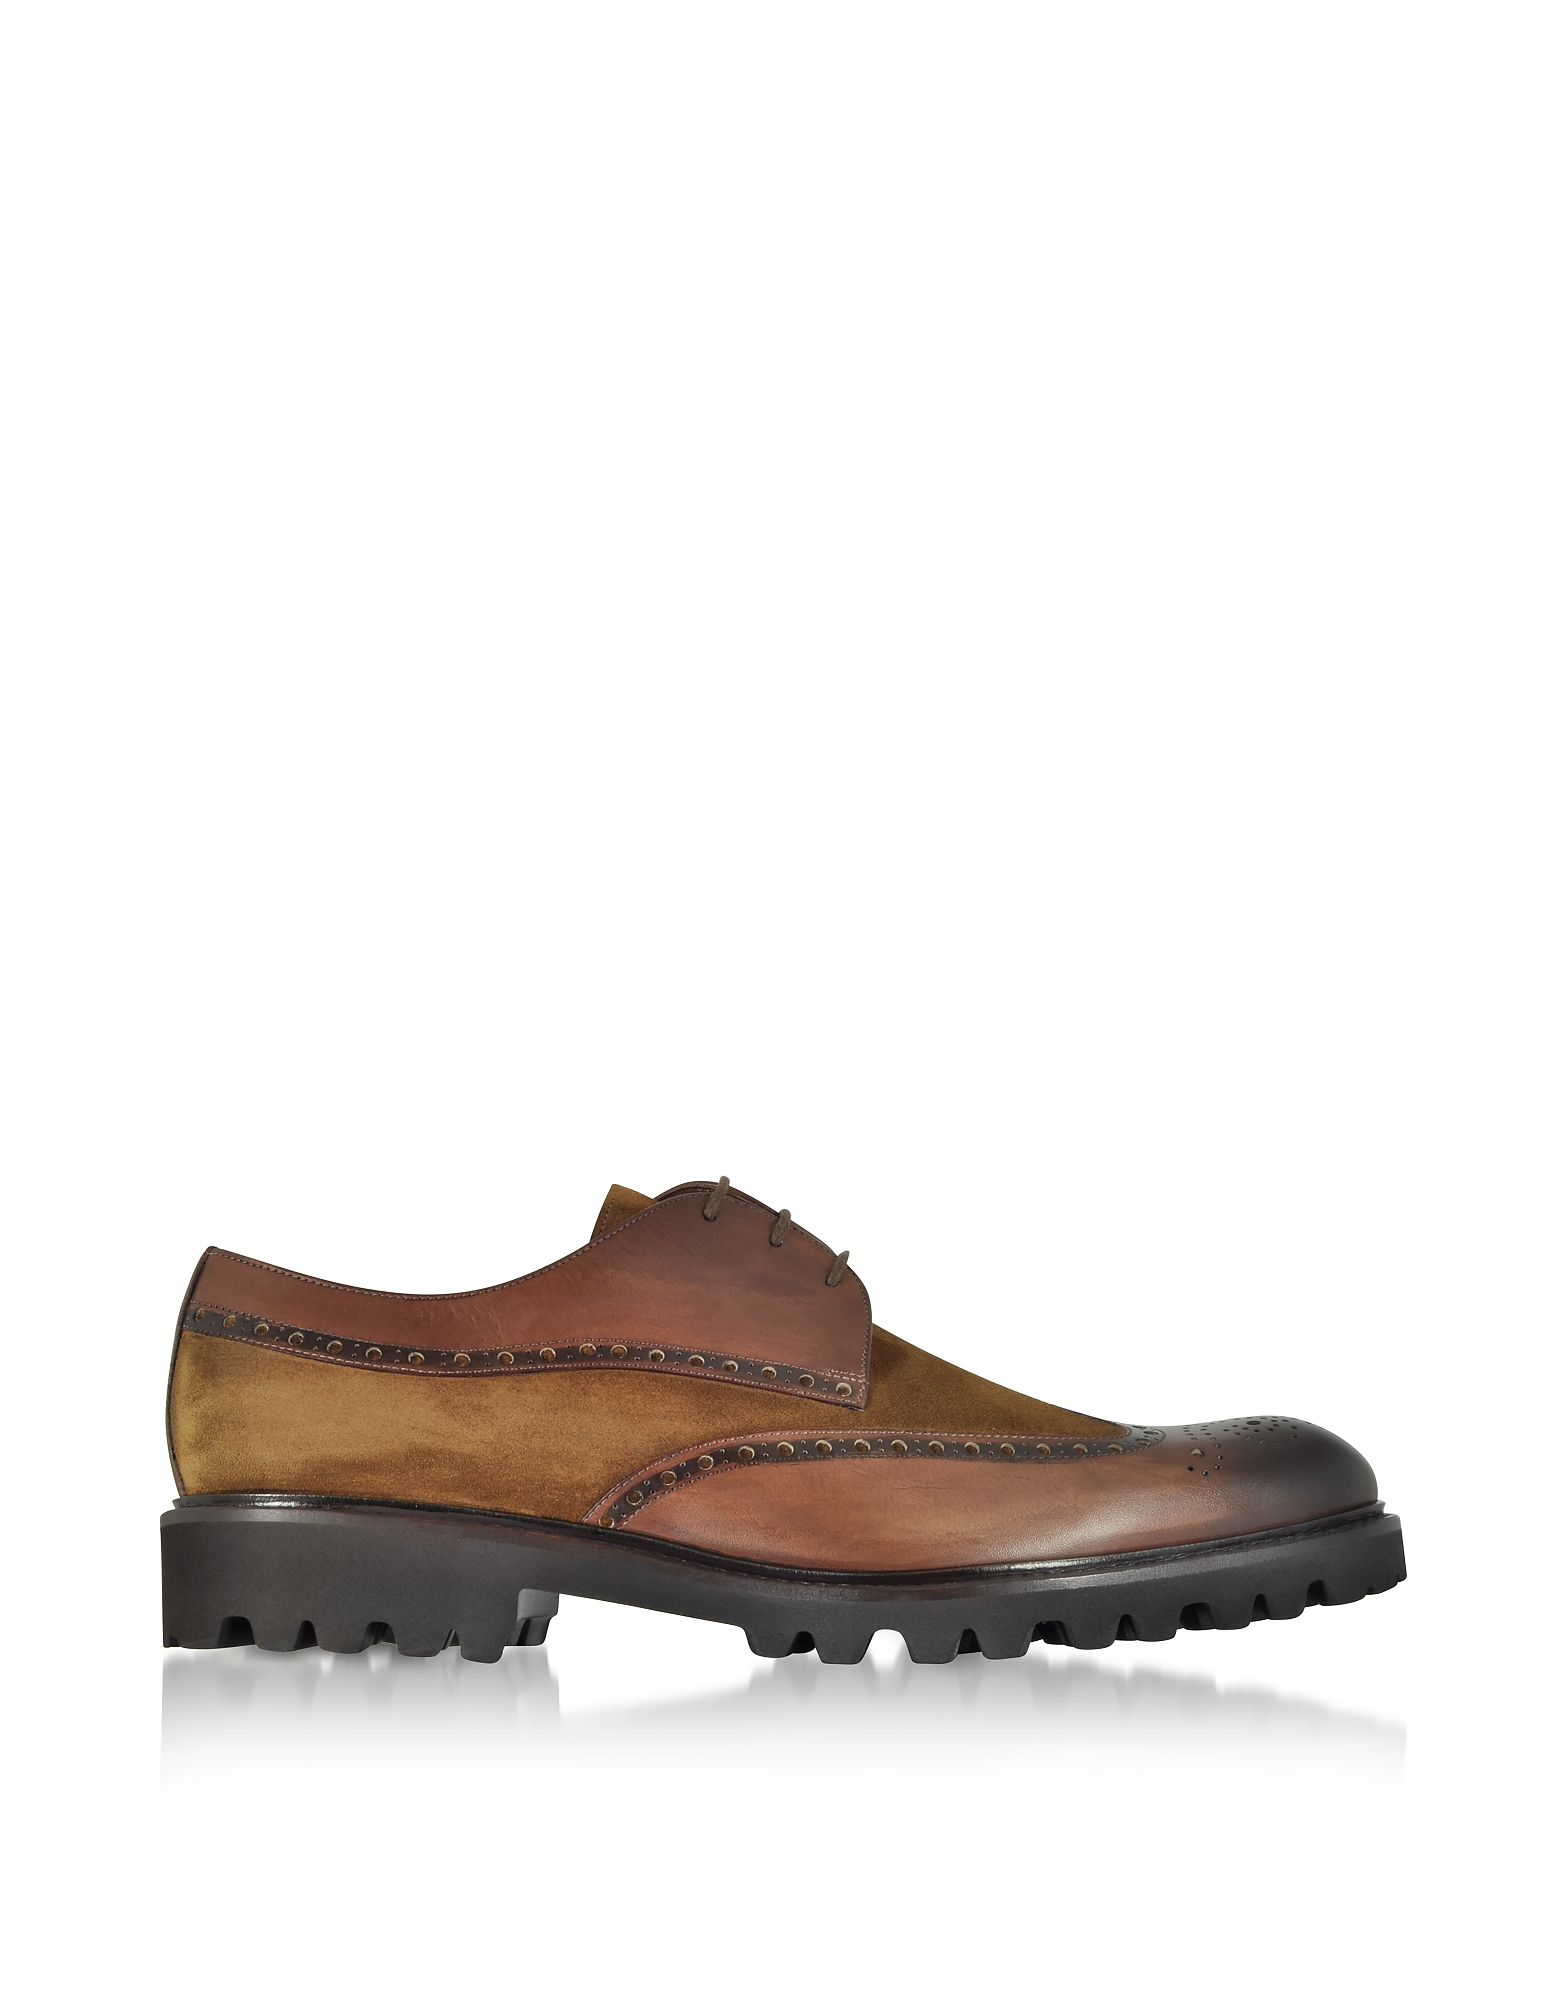 Fratelli Borgioli Shoes, Walnut Leather and Suede Oxford Shoes